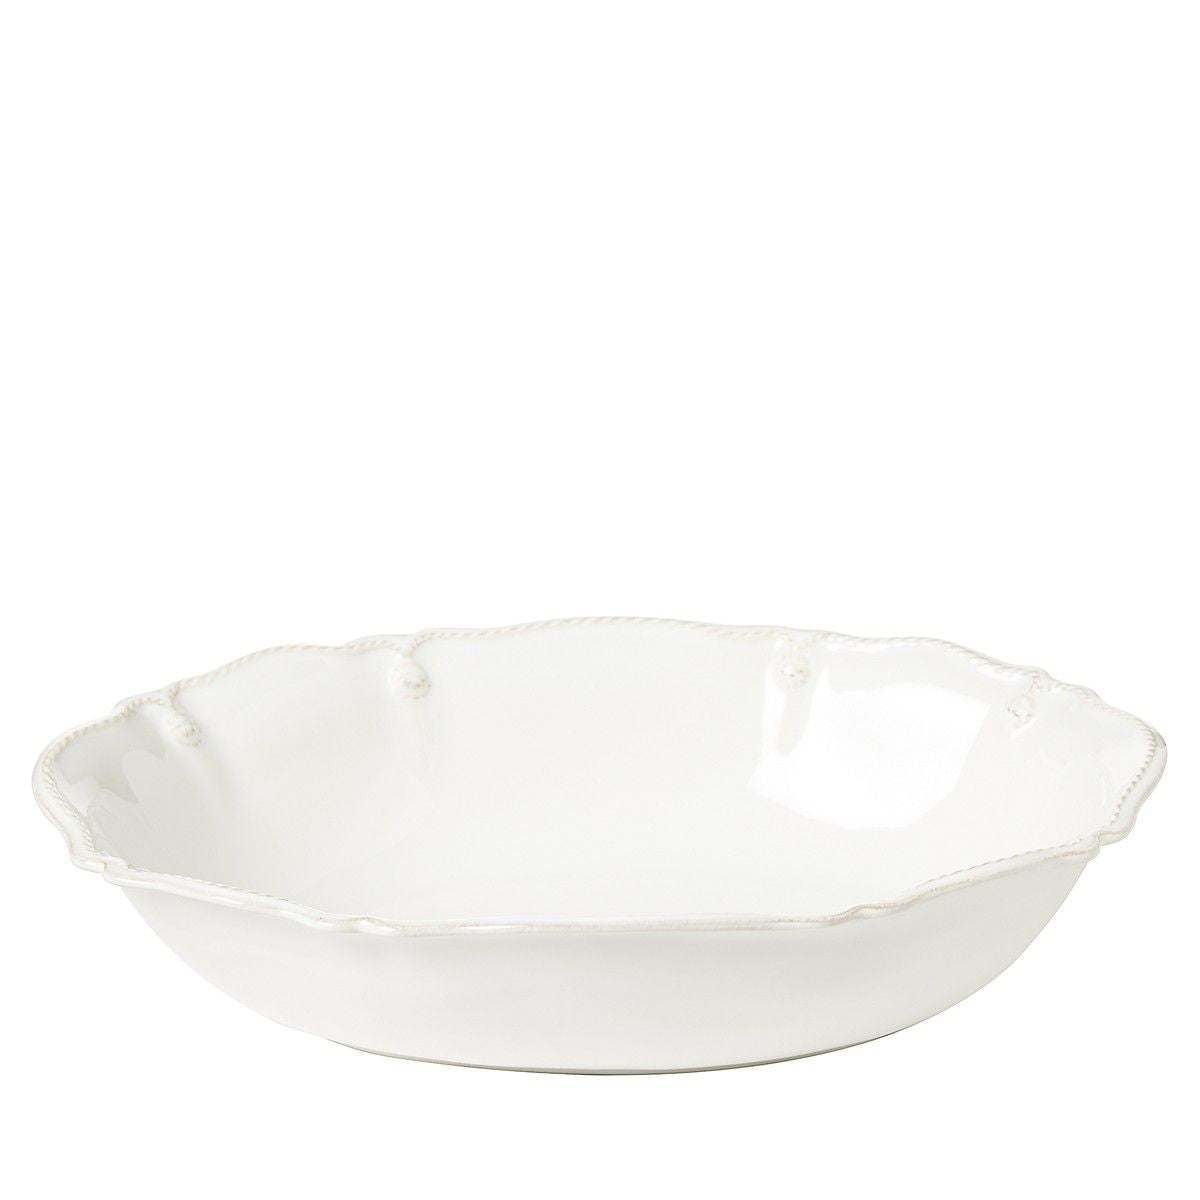 "B&T Whitewash 12"" Oval Serving Bowl"